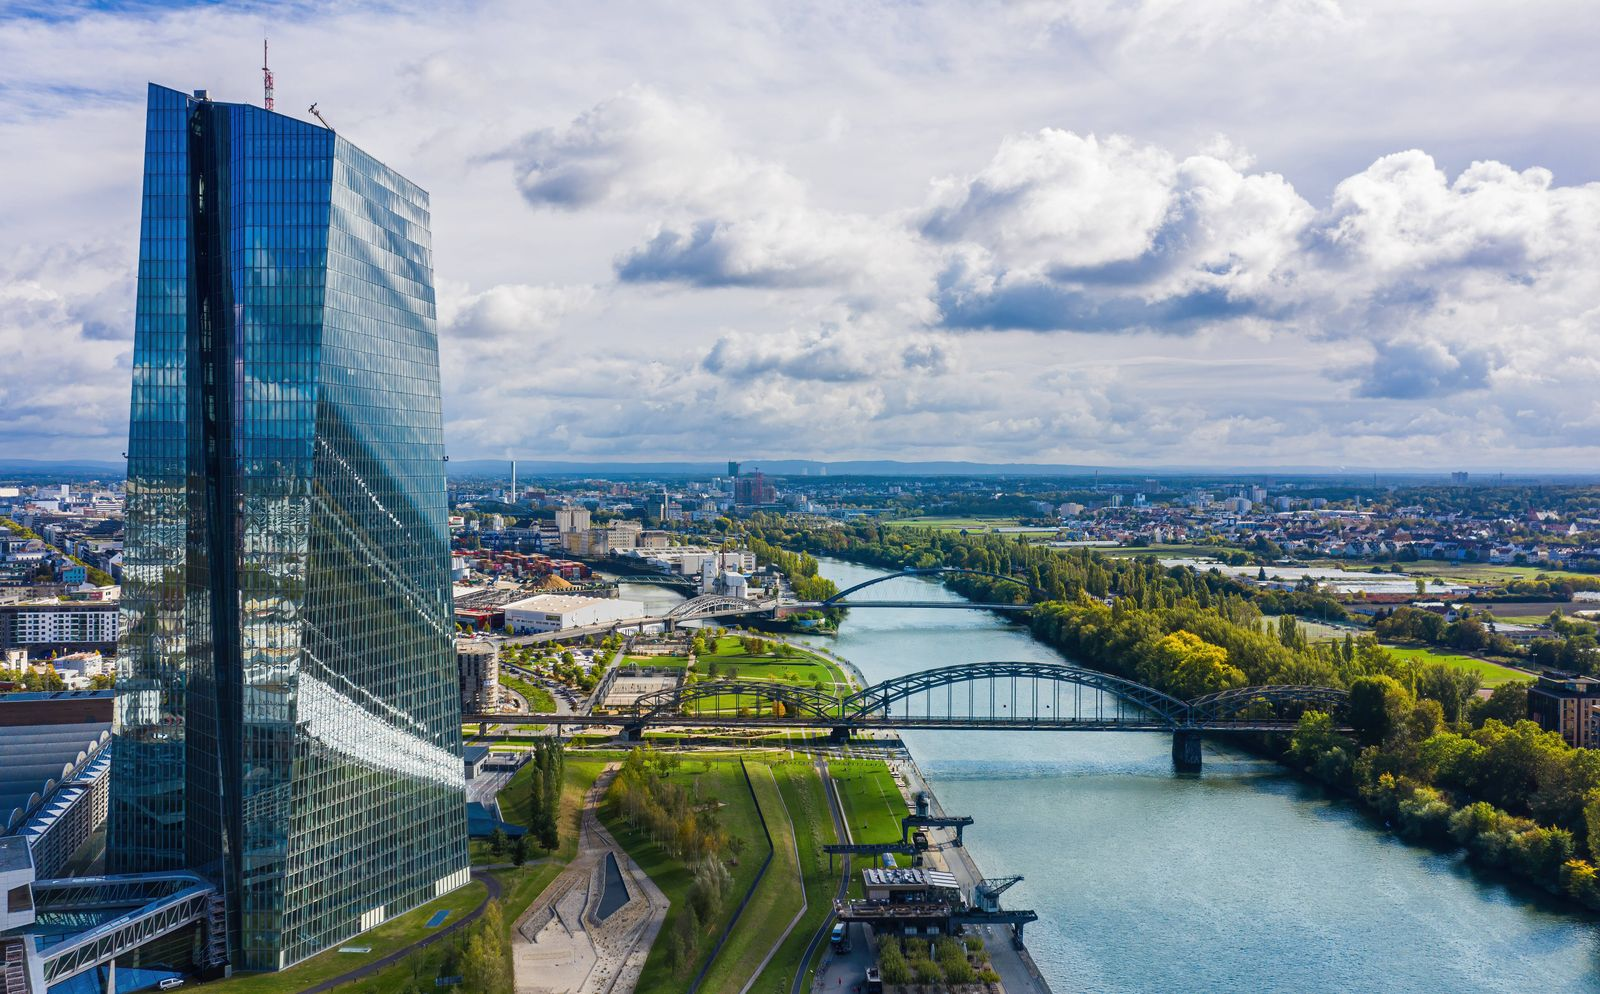 Aerial View of the ECB with the river Main in Frankfurt European Central Bank in Frankfurt a. Main, Germany